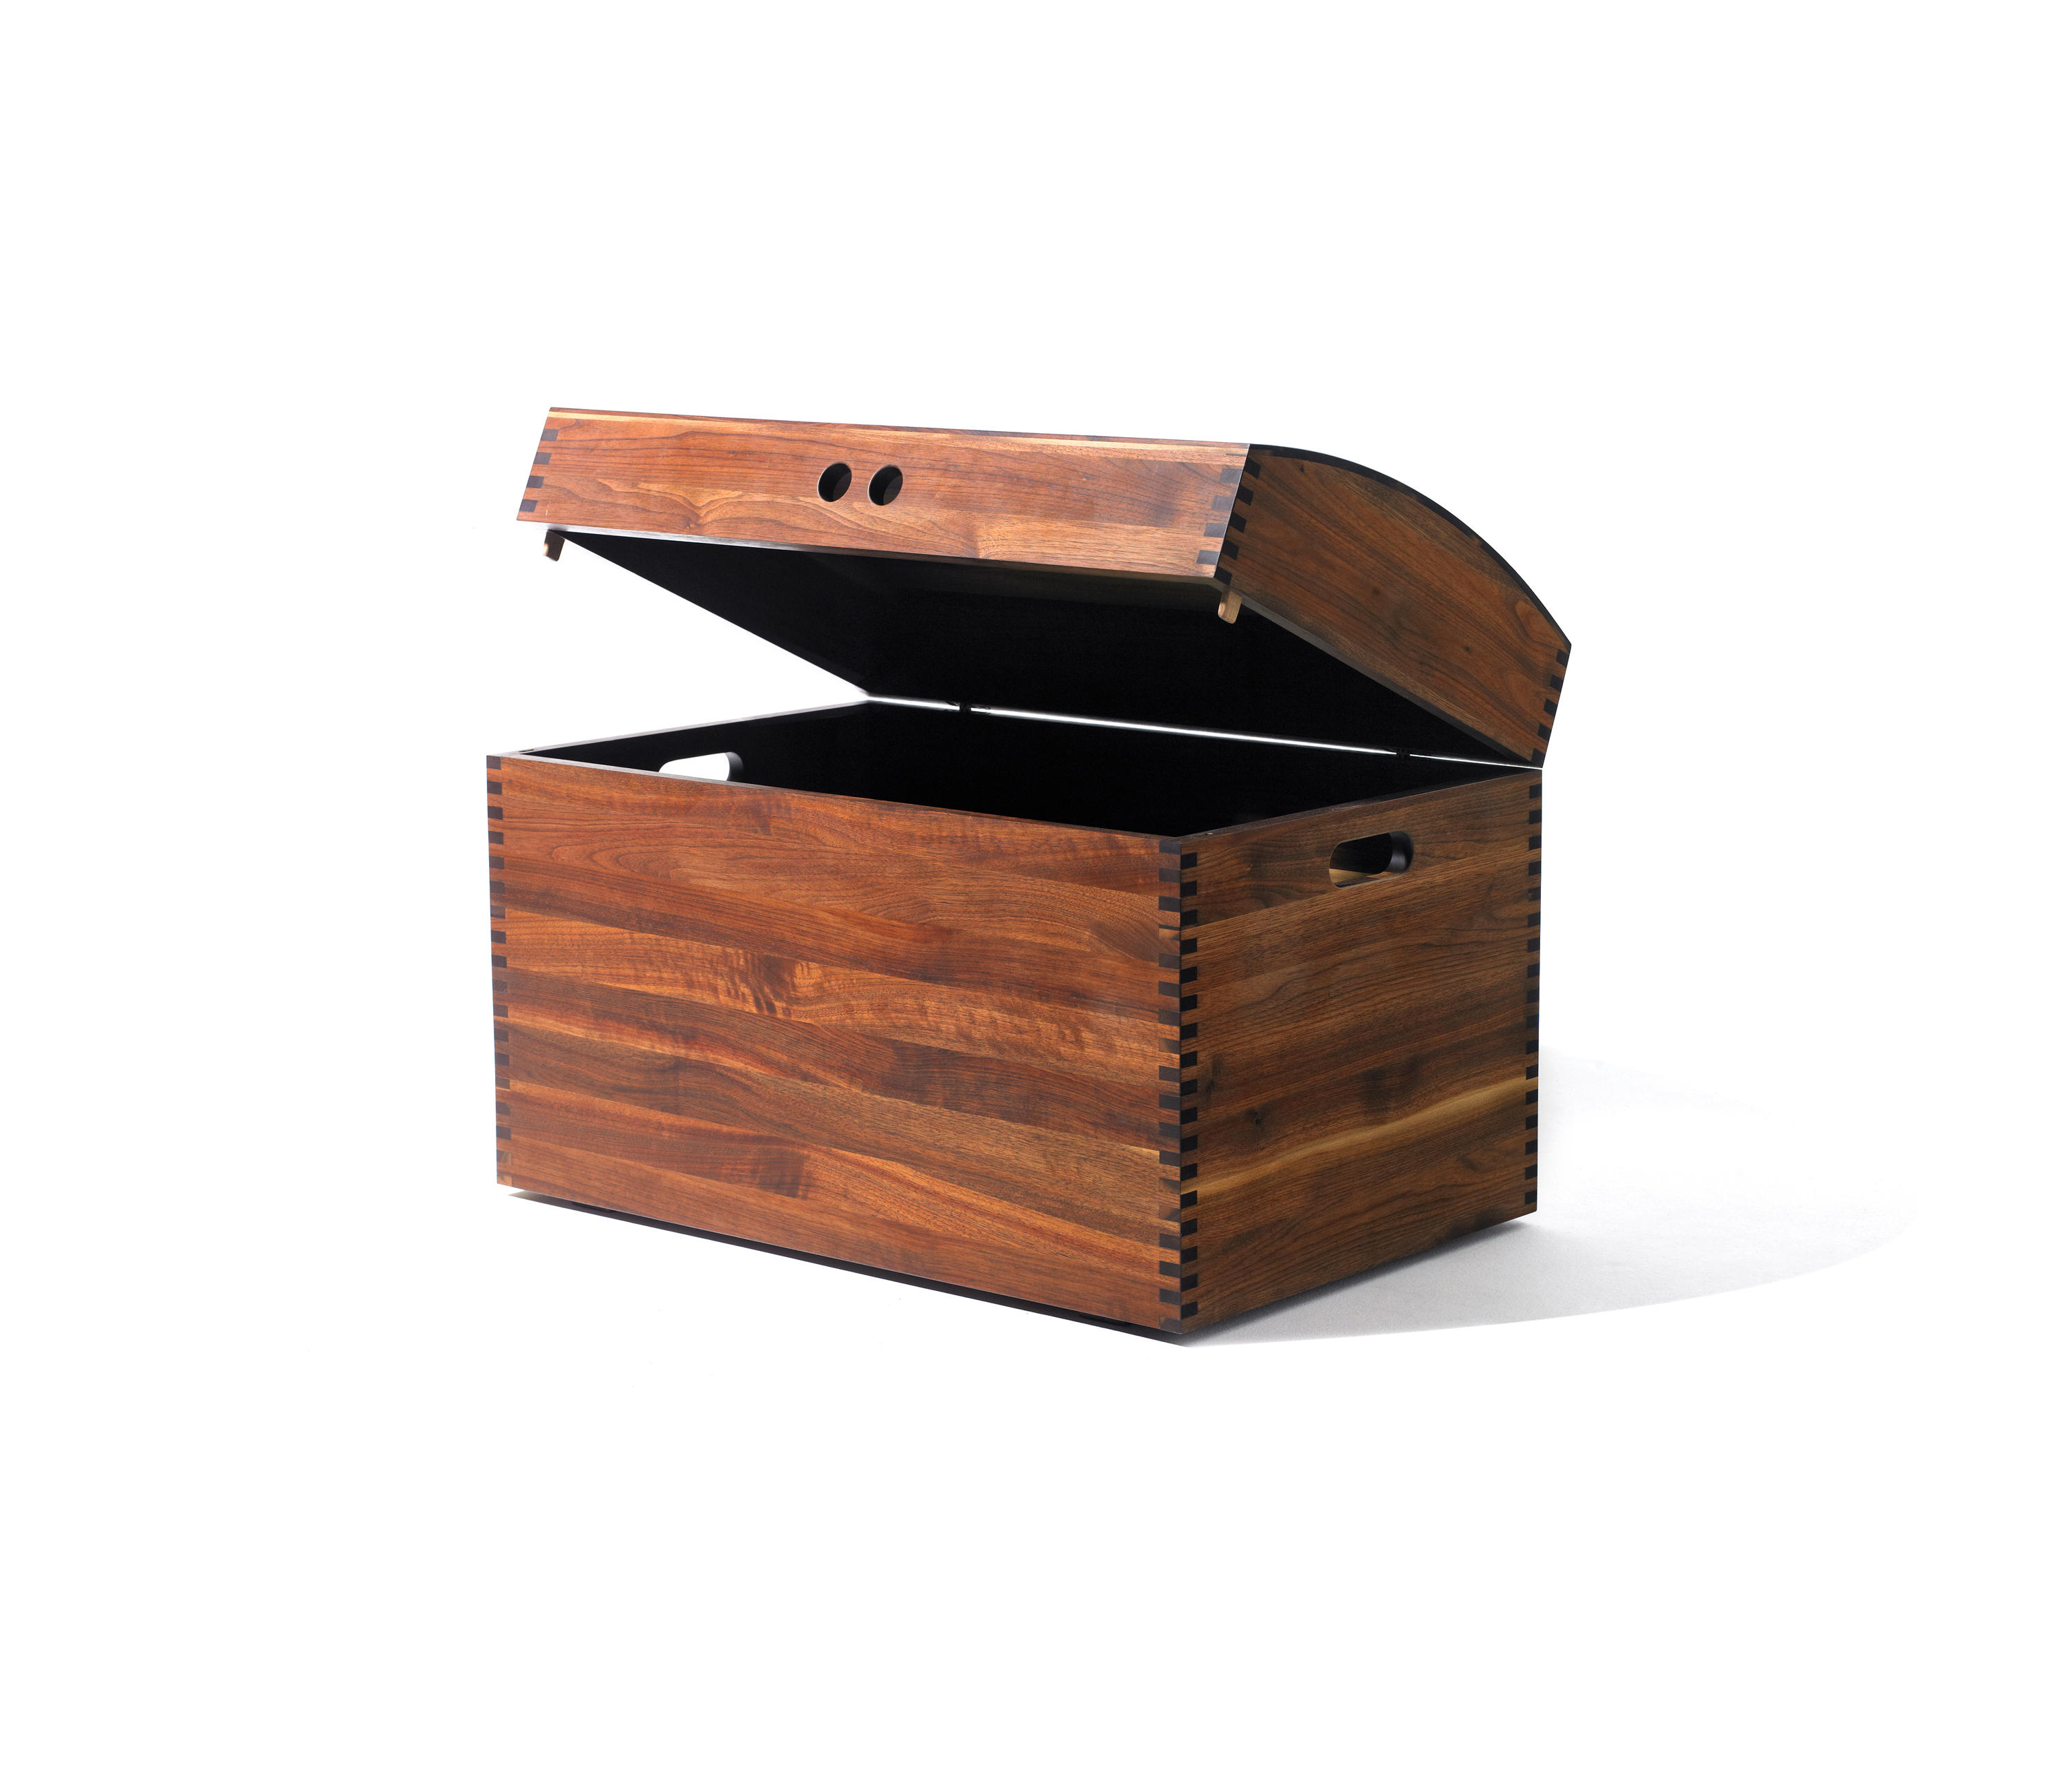 Amazing Jack Treasure Chest By Sixay Furniture | Storage Boxes ...